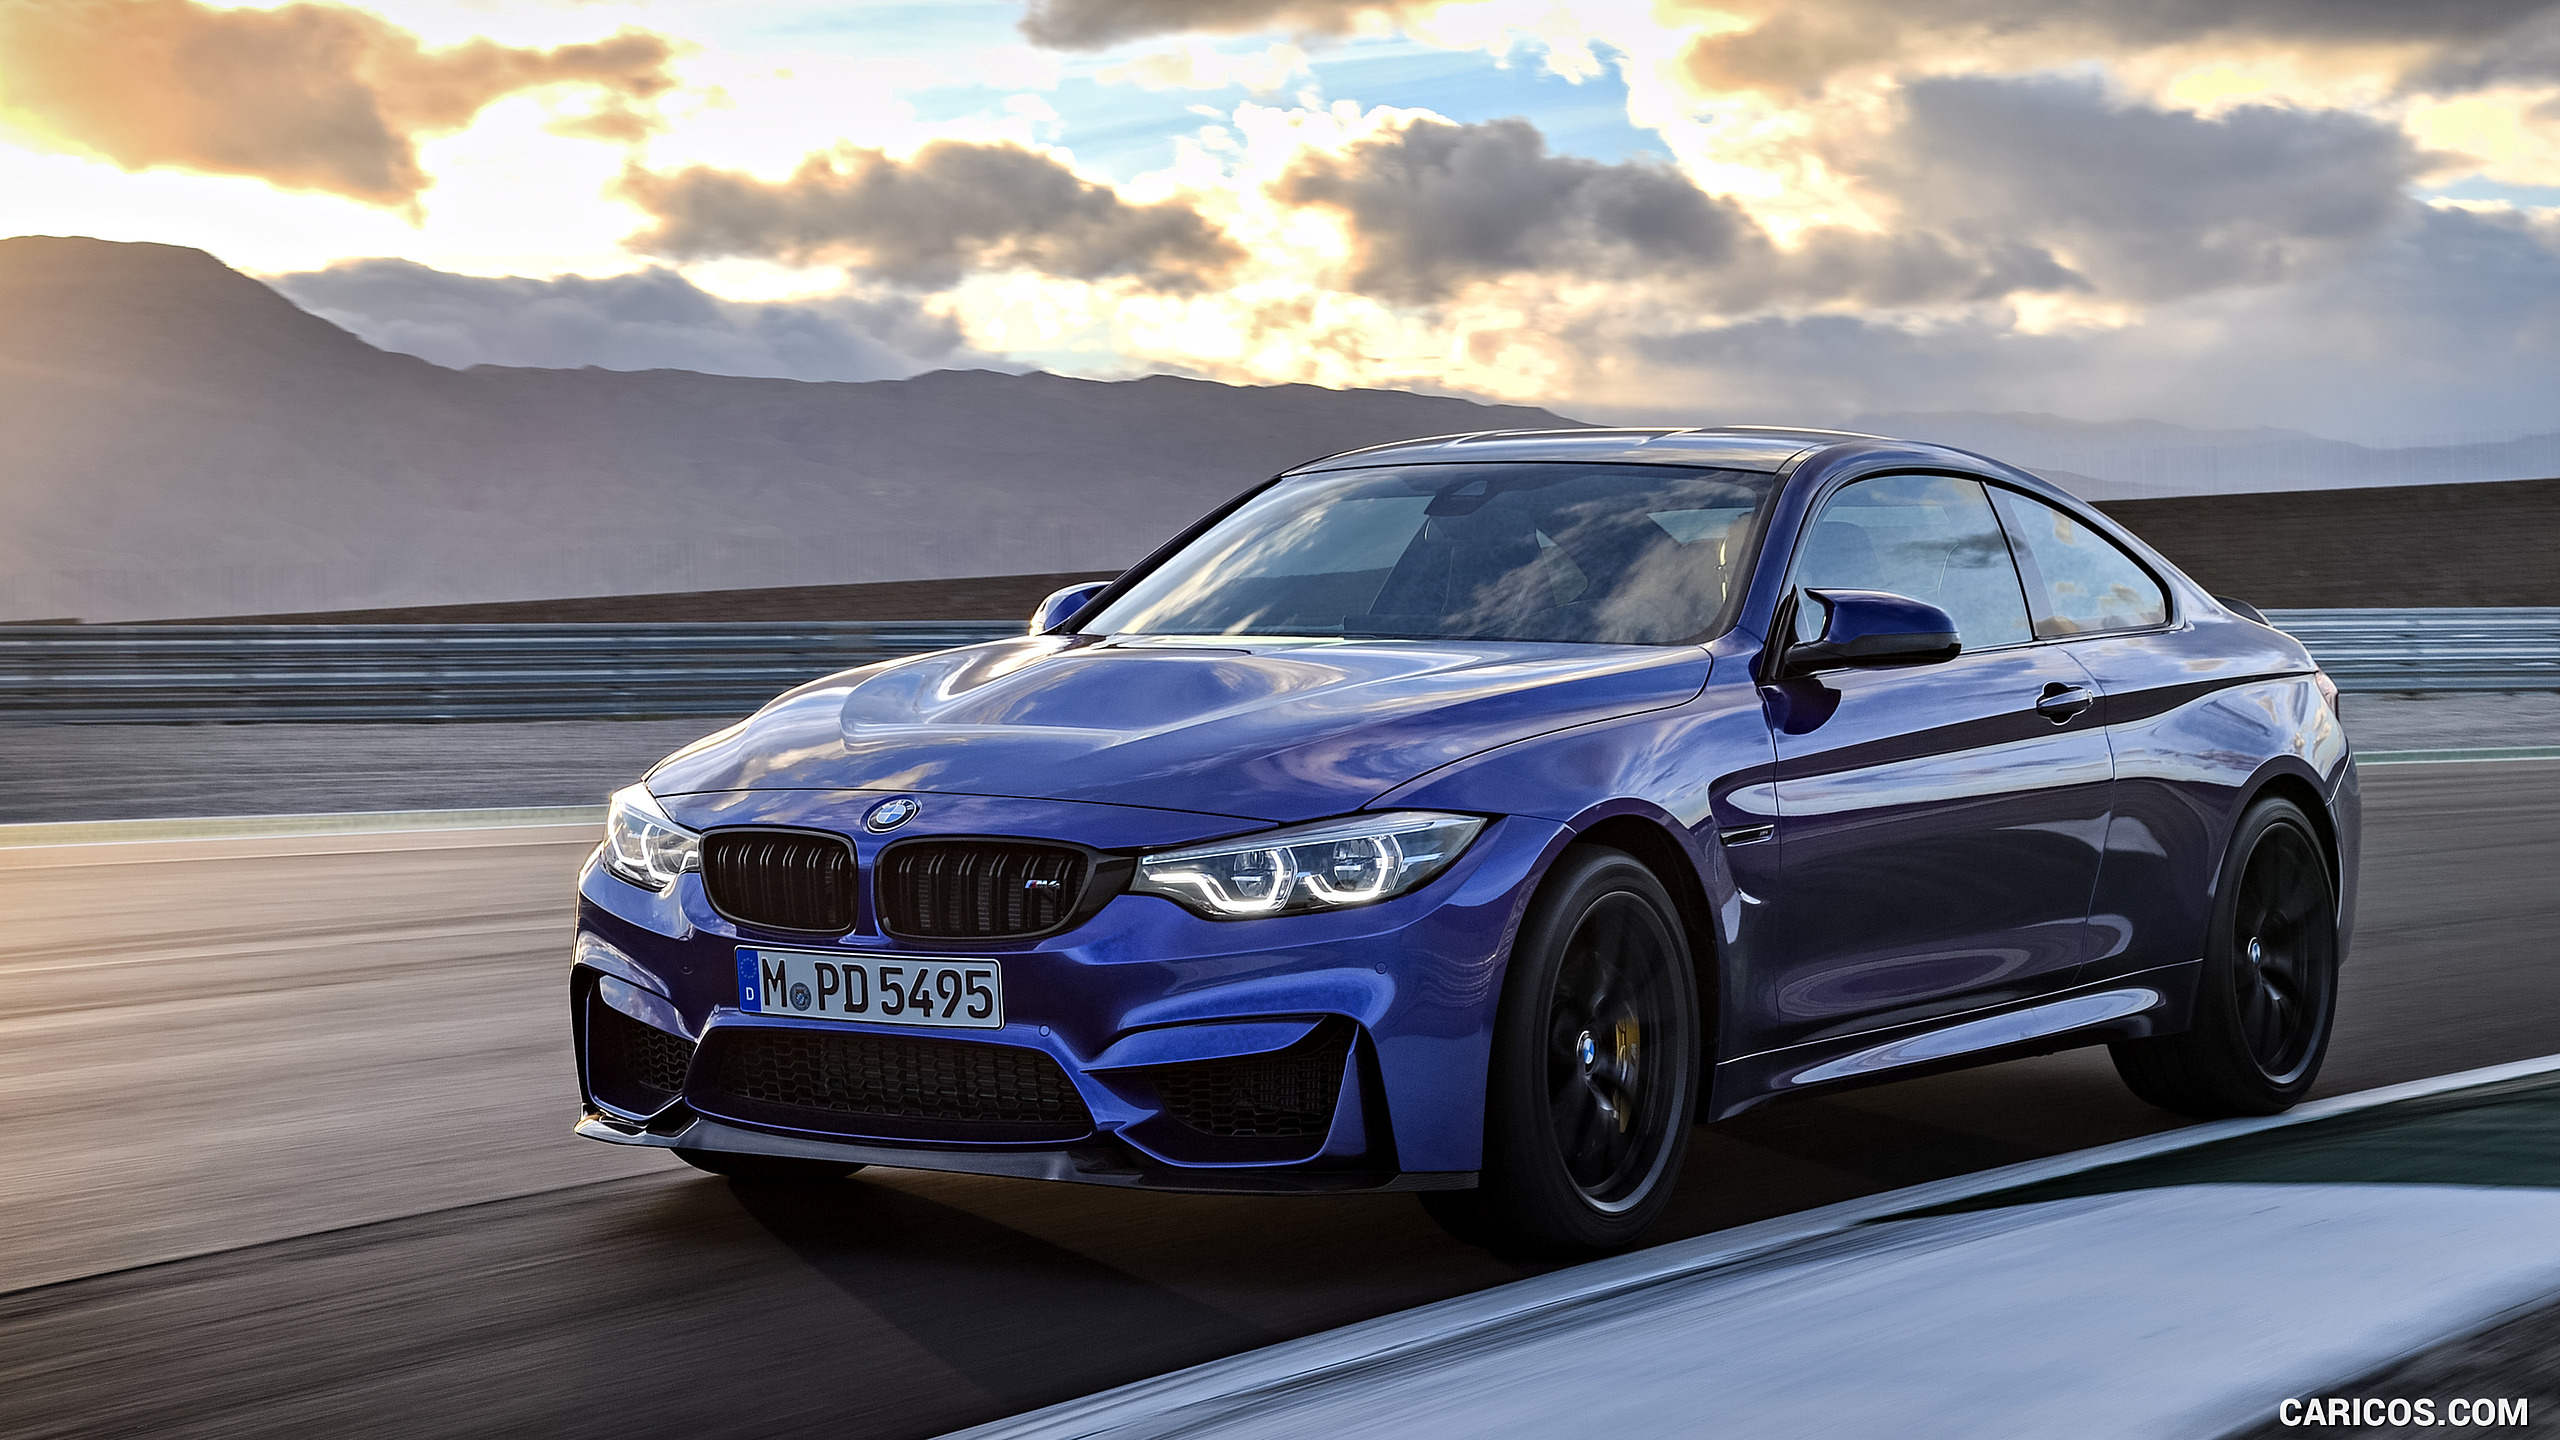 2560x1440 - BMW M4 Wallpapers 11